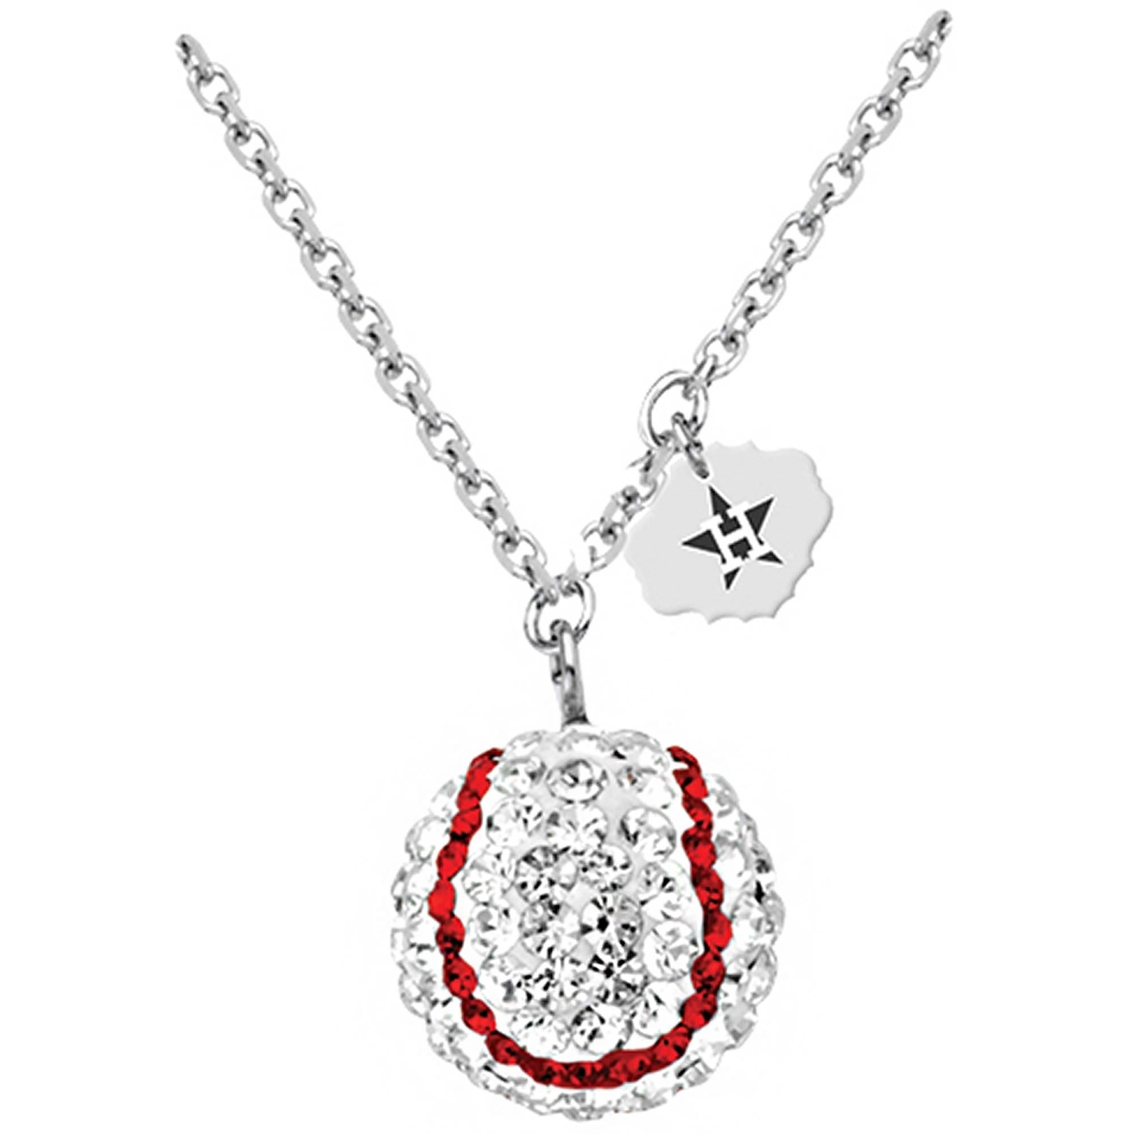 sterling silver mlb houston astros baseball necklace with